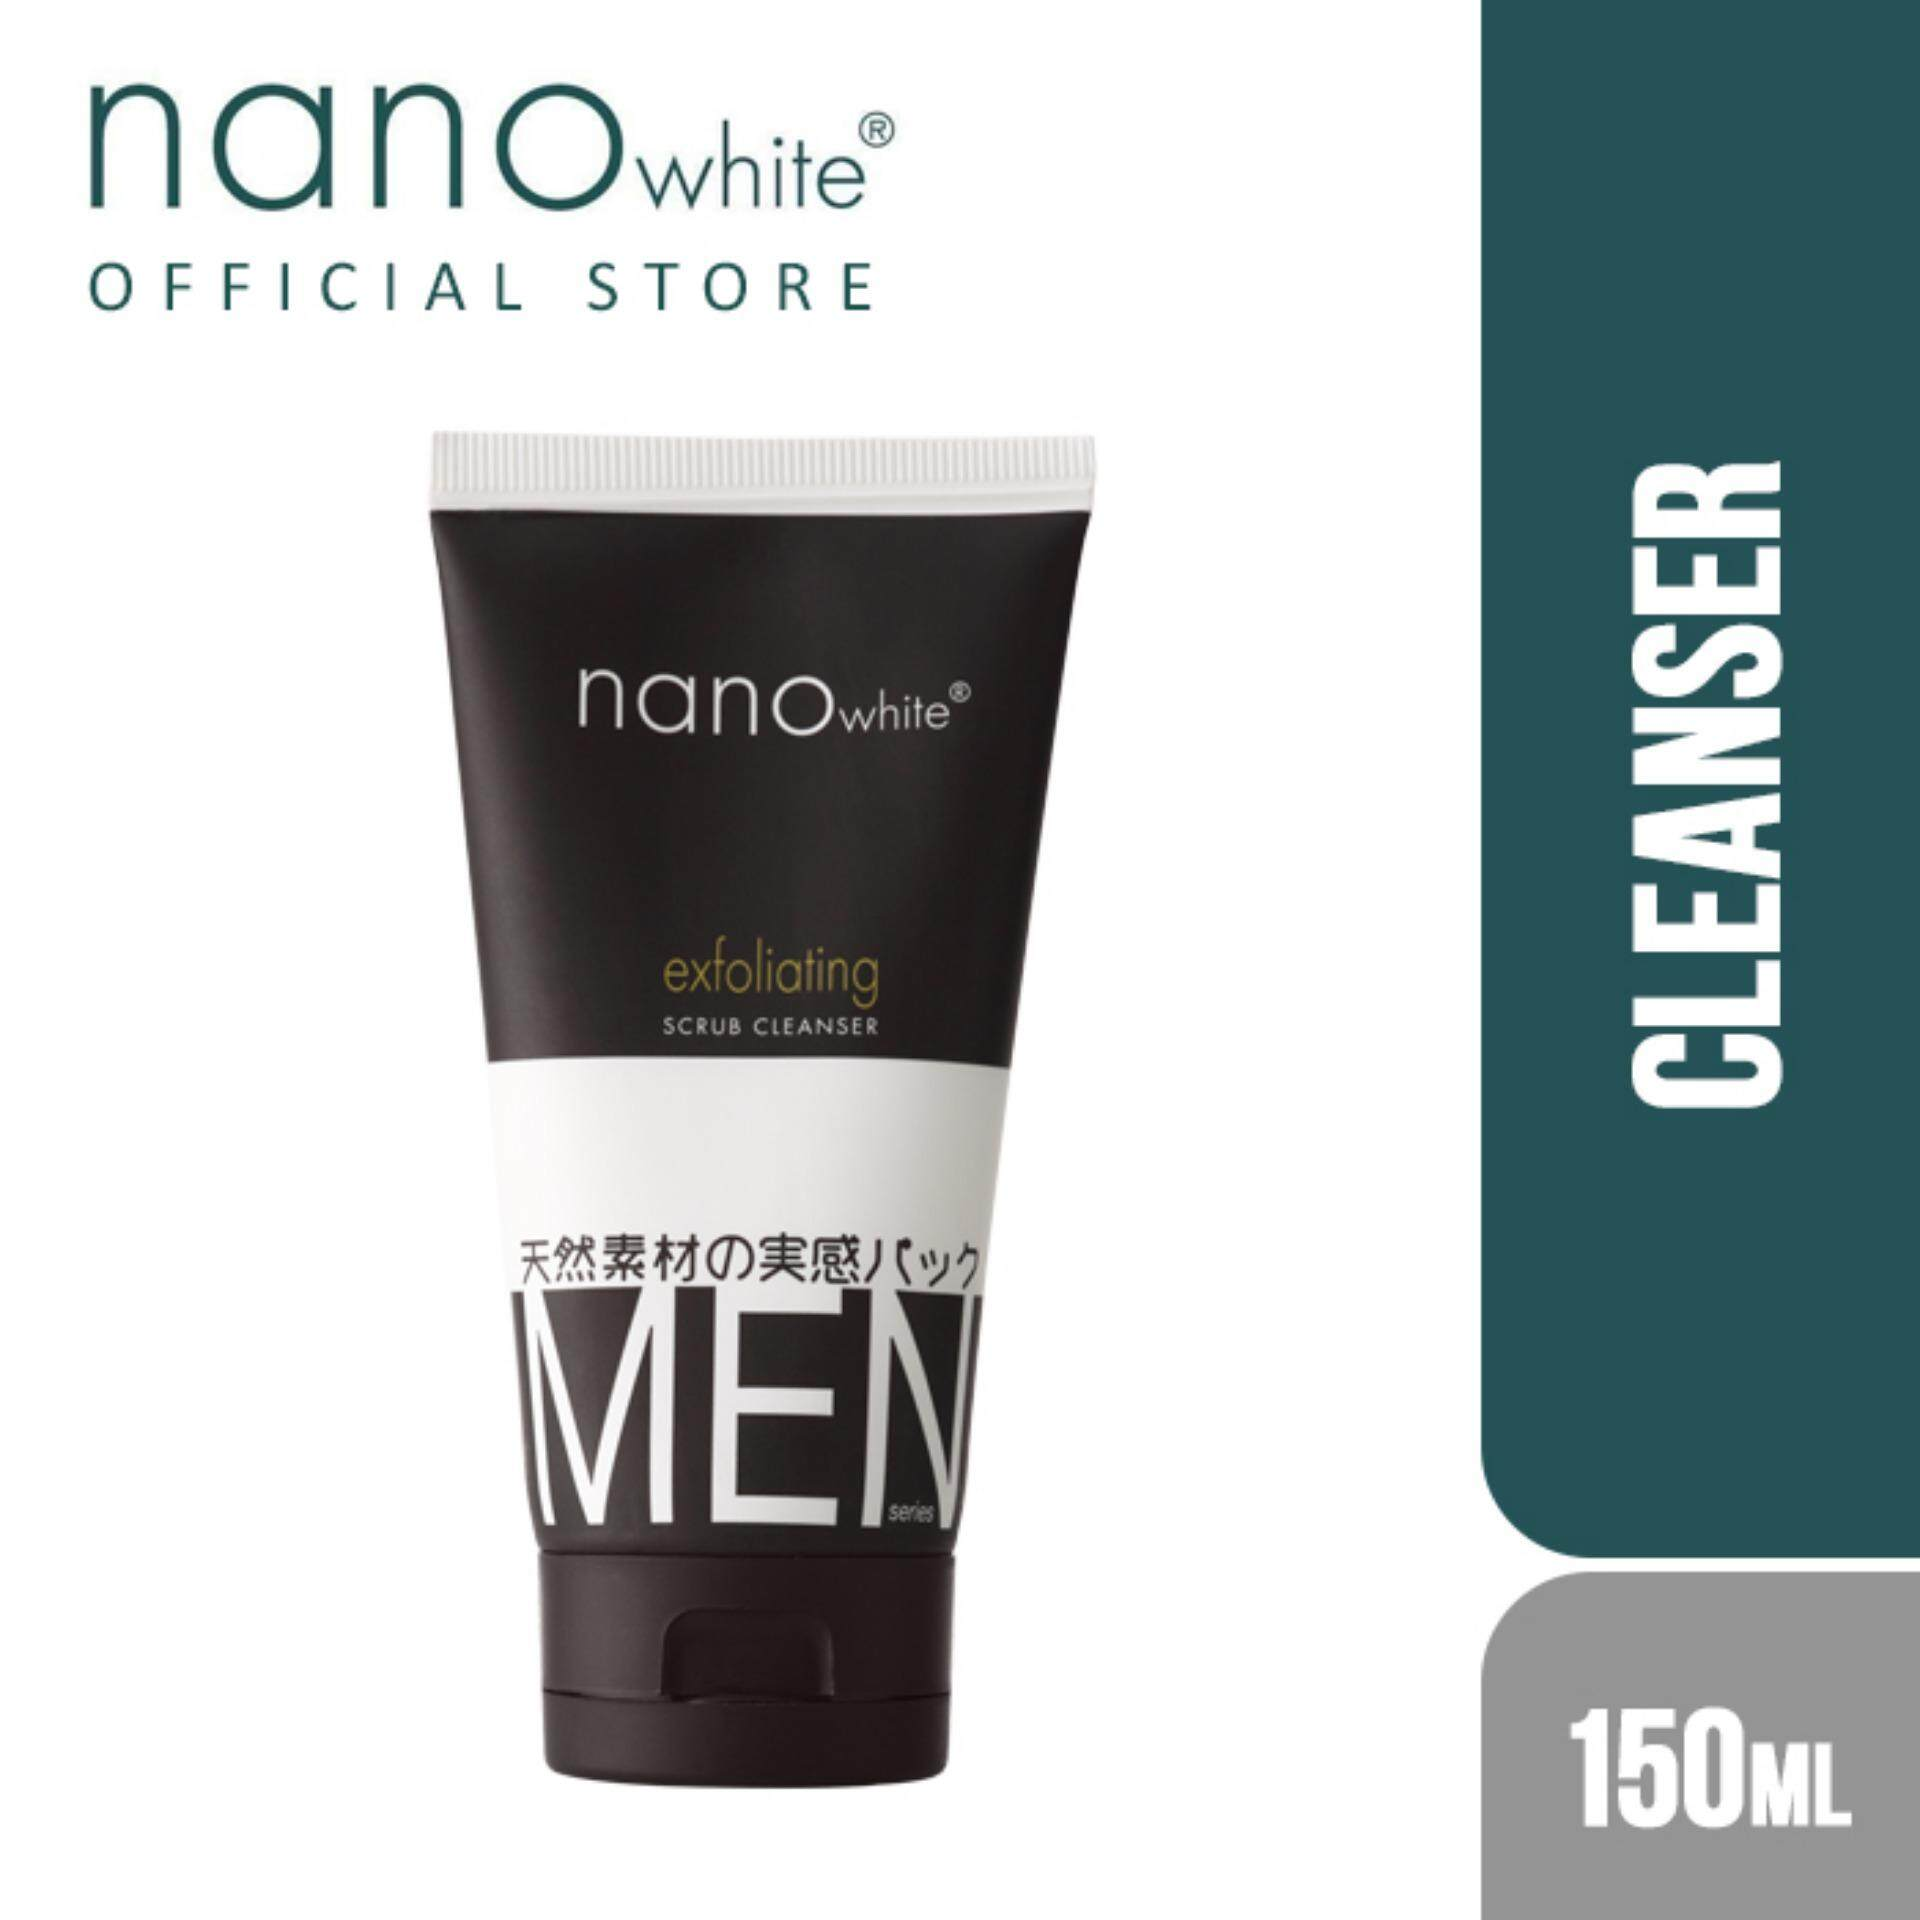 Nanowhite Men Exfoliating Scrub Cleanser (150ml) By Nanowhite Official Store.